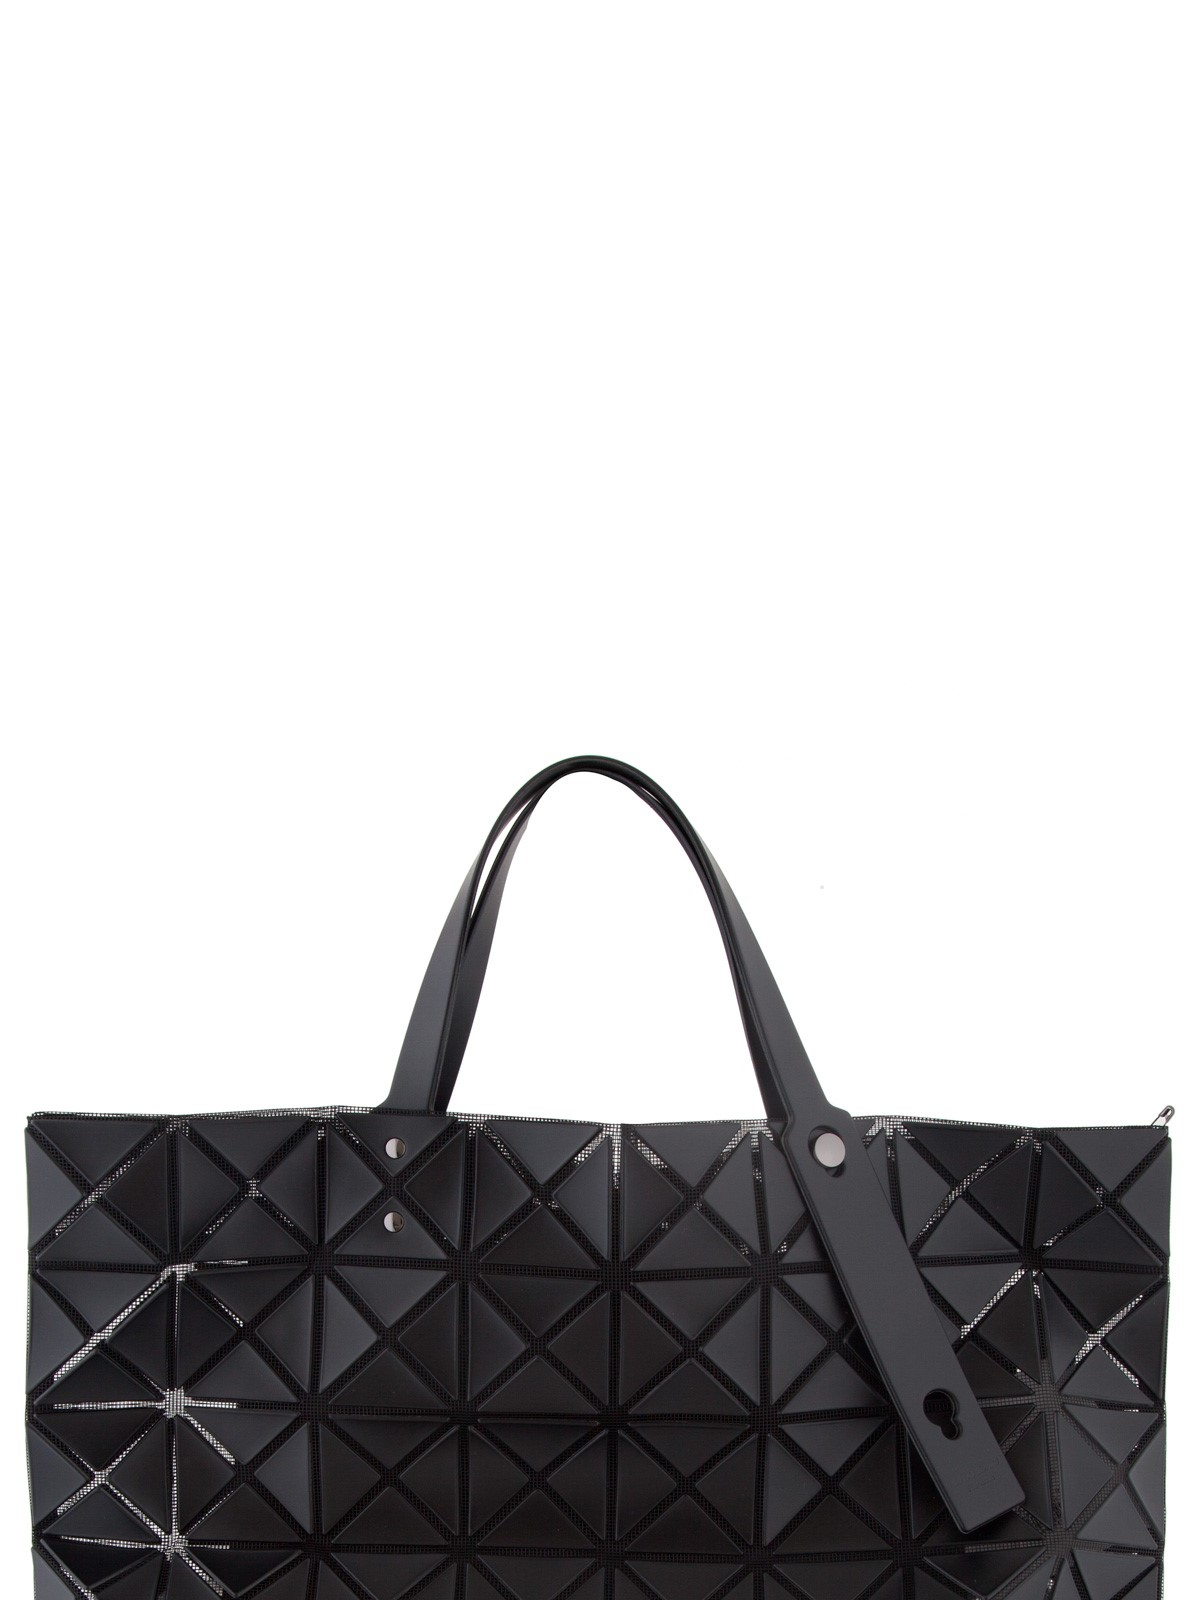 2647104416b bao bao issey miyake PRISM TOTE BAG available on montiboutique.com ...